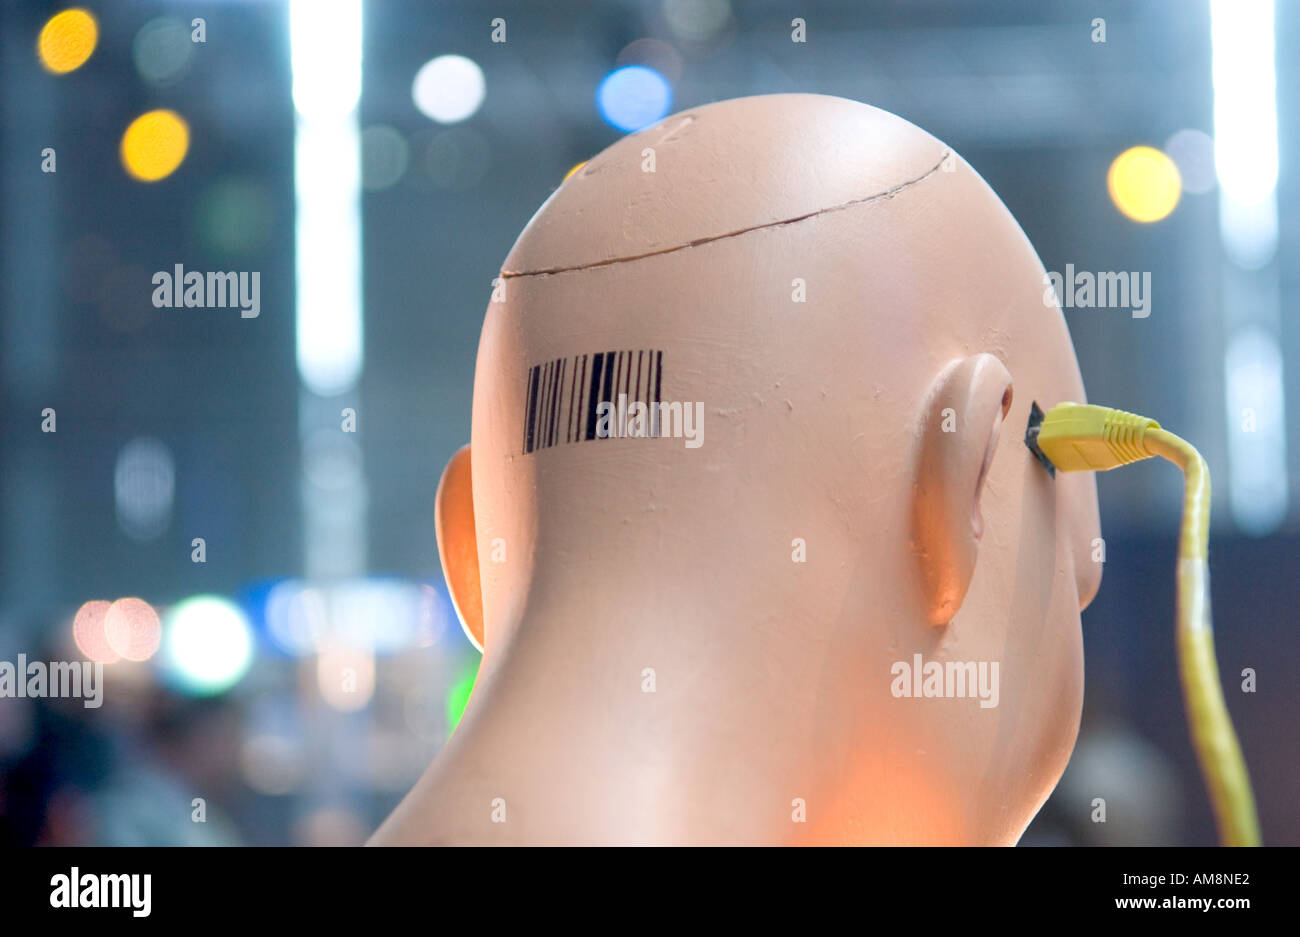 mannequin head with barcode connected to ethernet cable - Stock Image